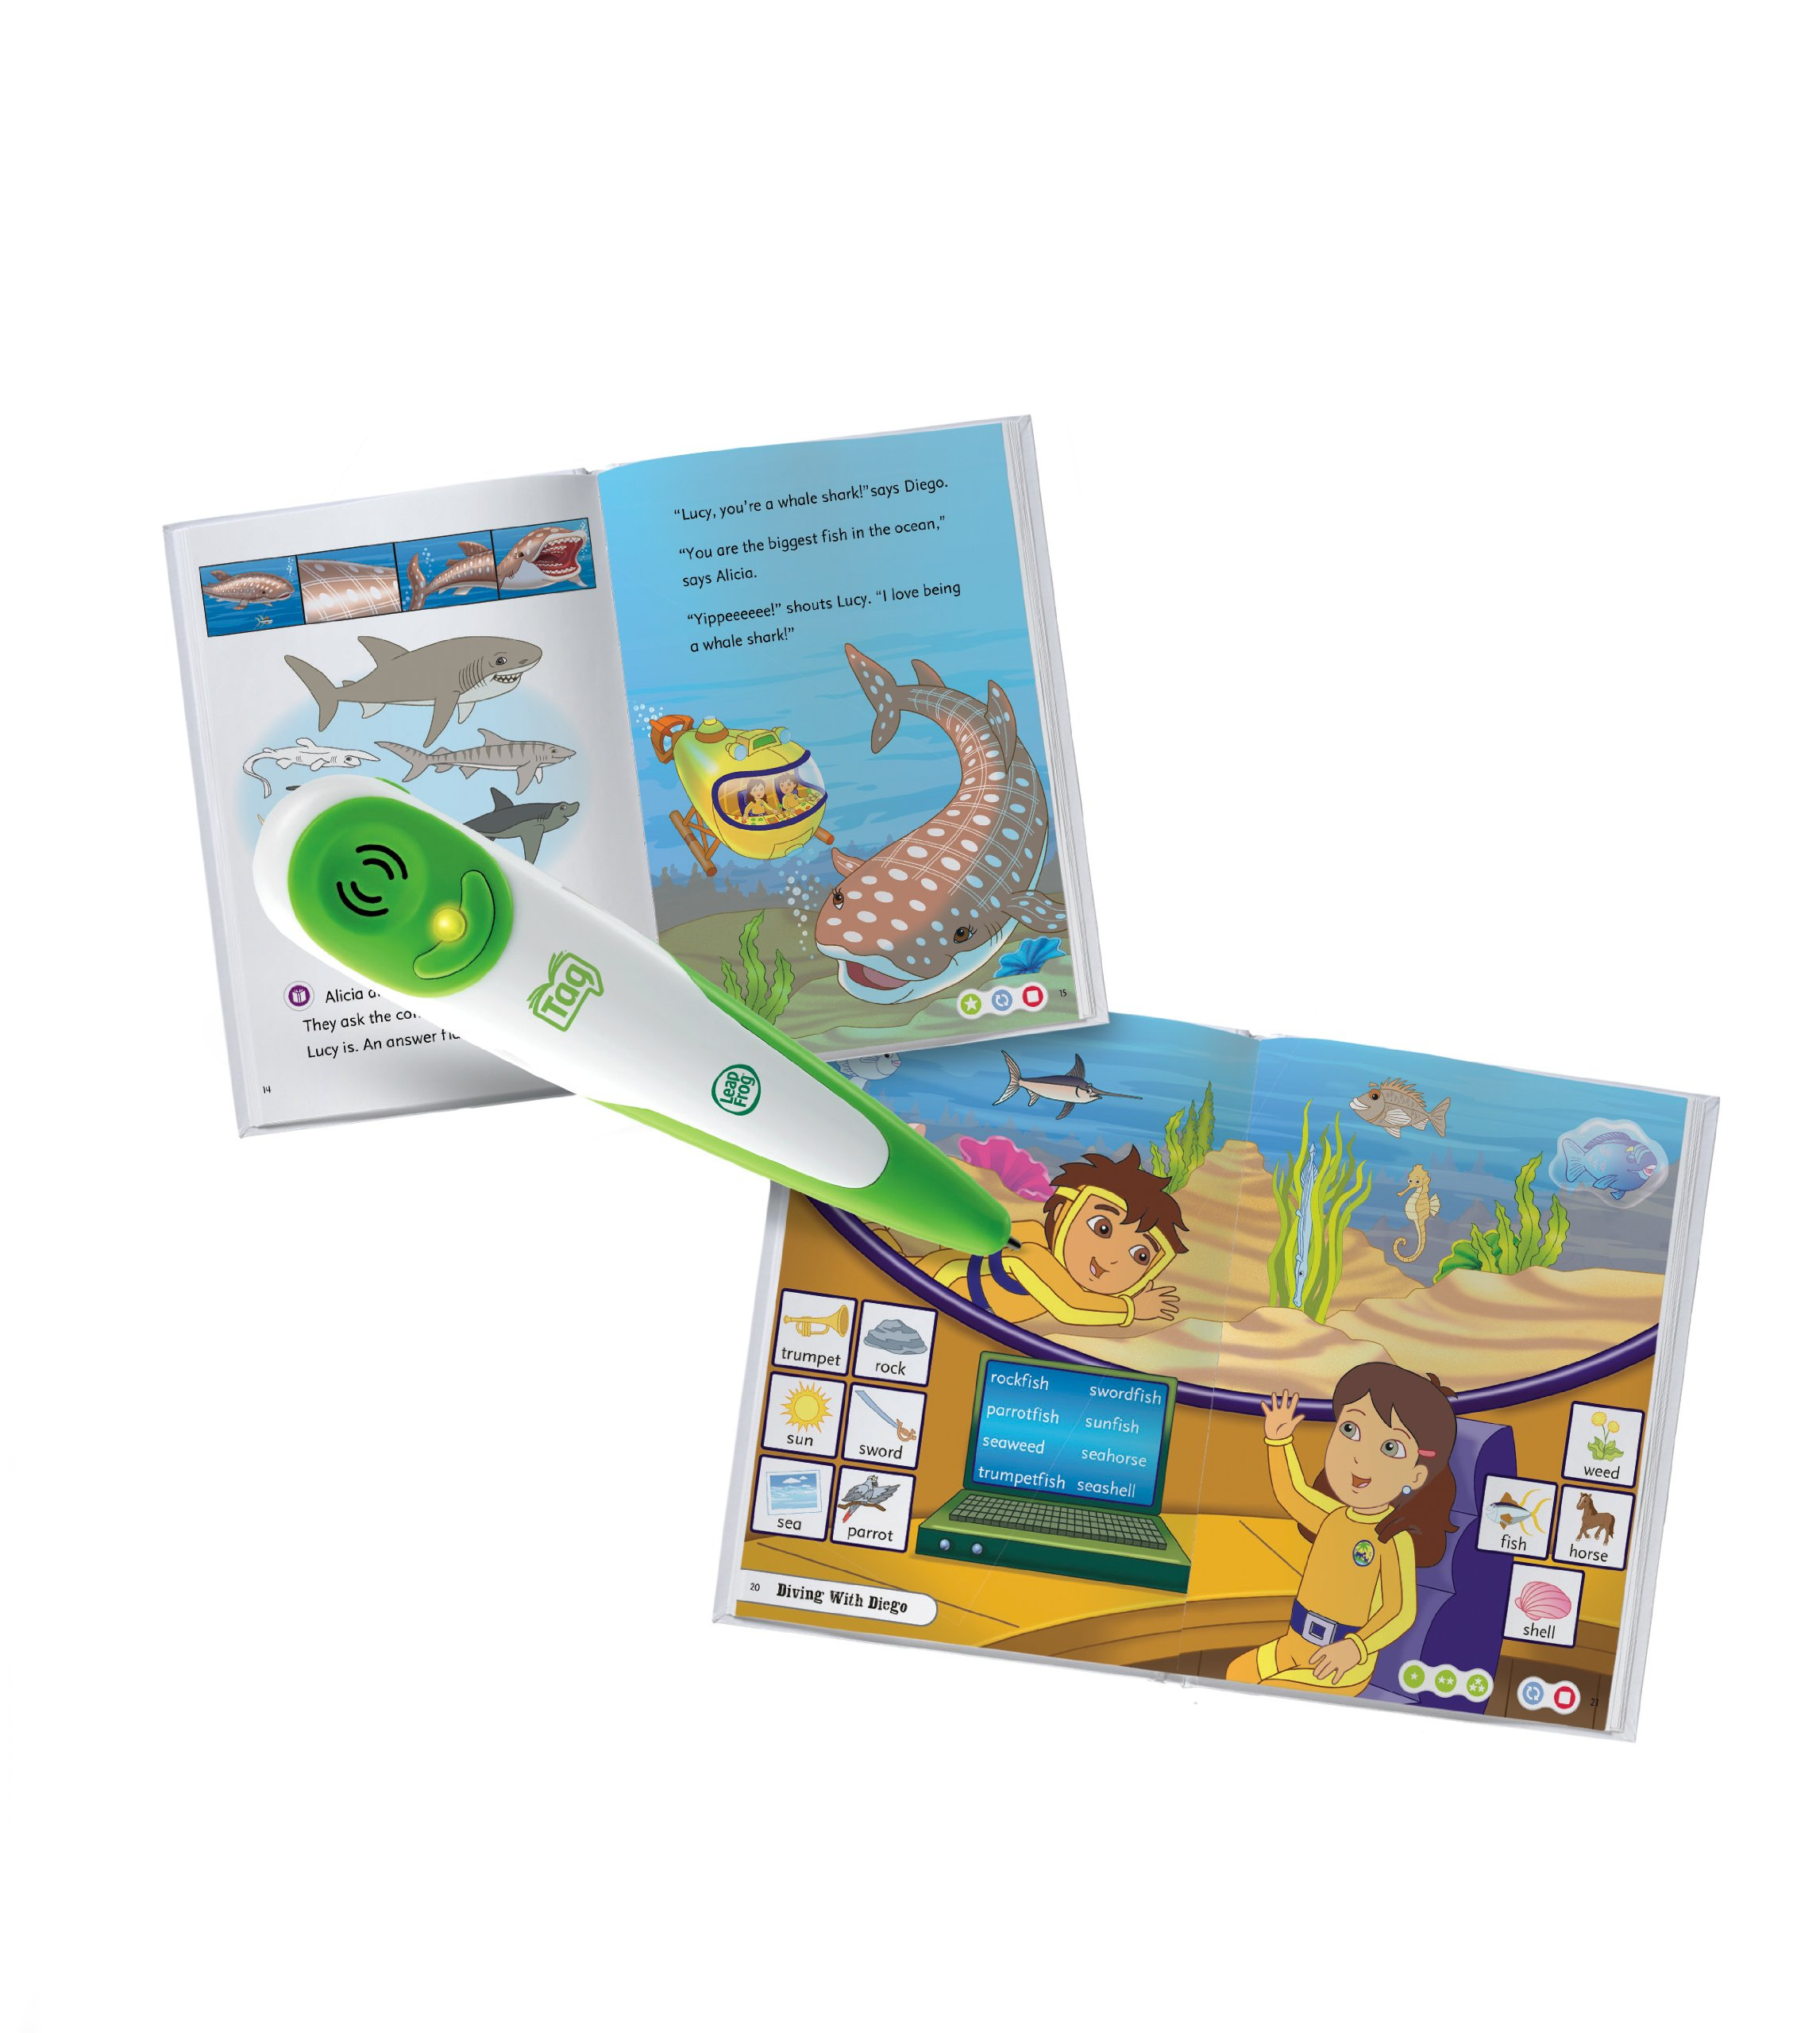 Leapfrog Tag Activity Storybook Go Diego Go!: Underwater Mystery by LeapFrog (Image #5)